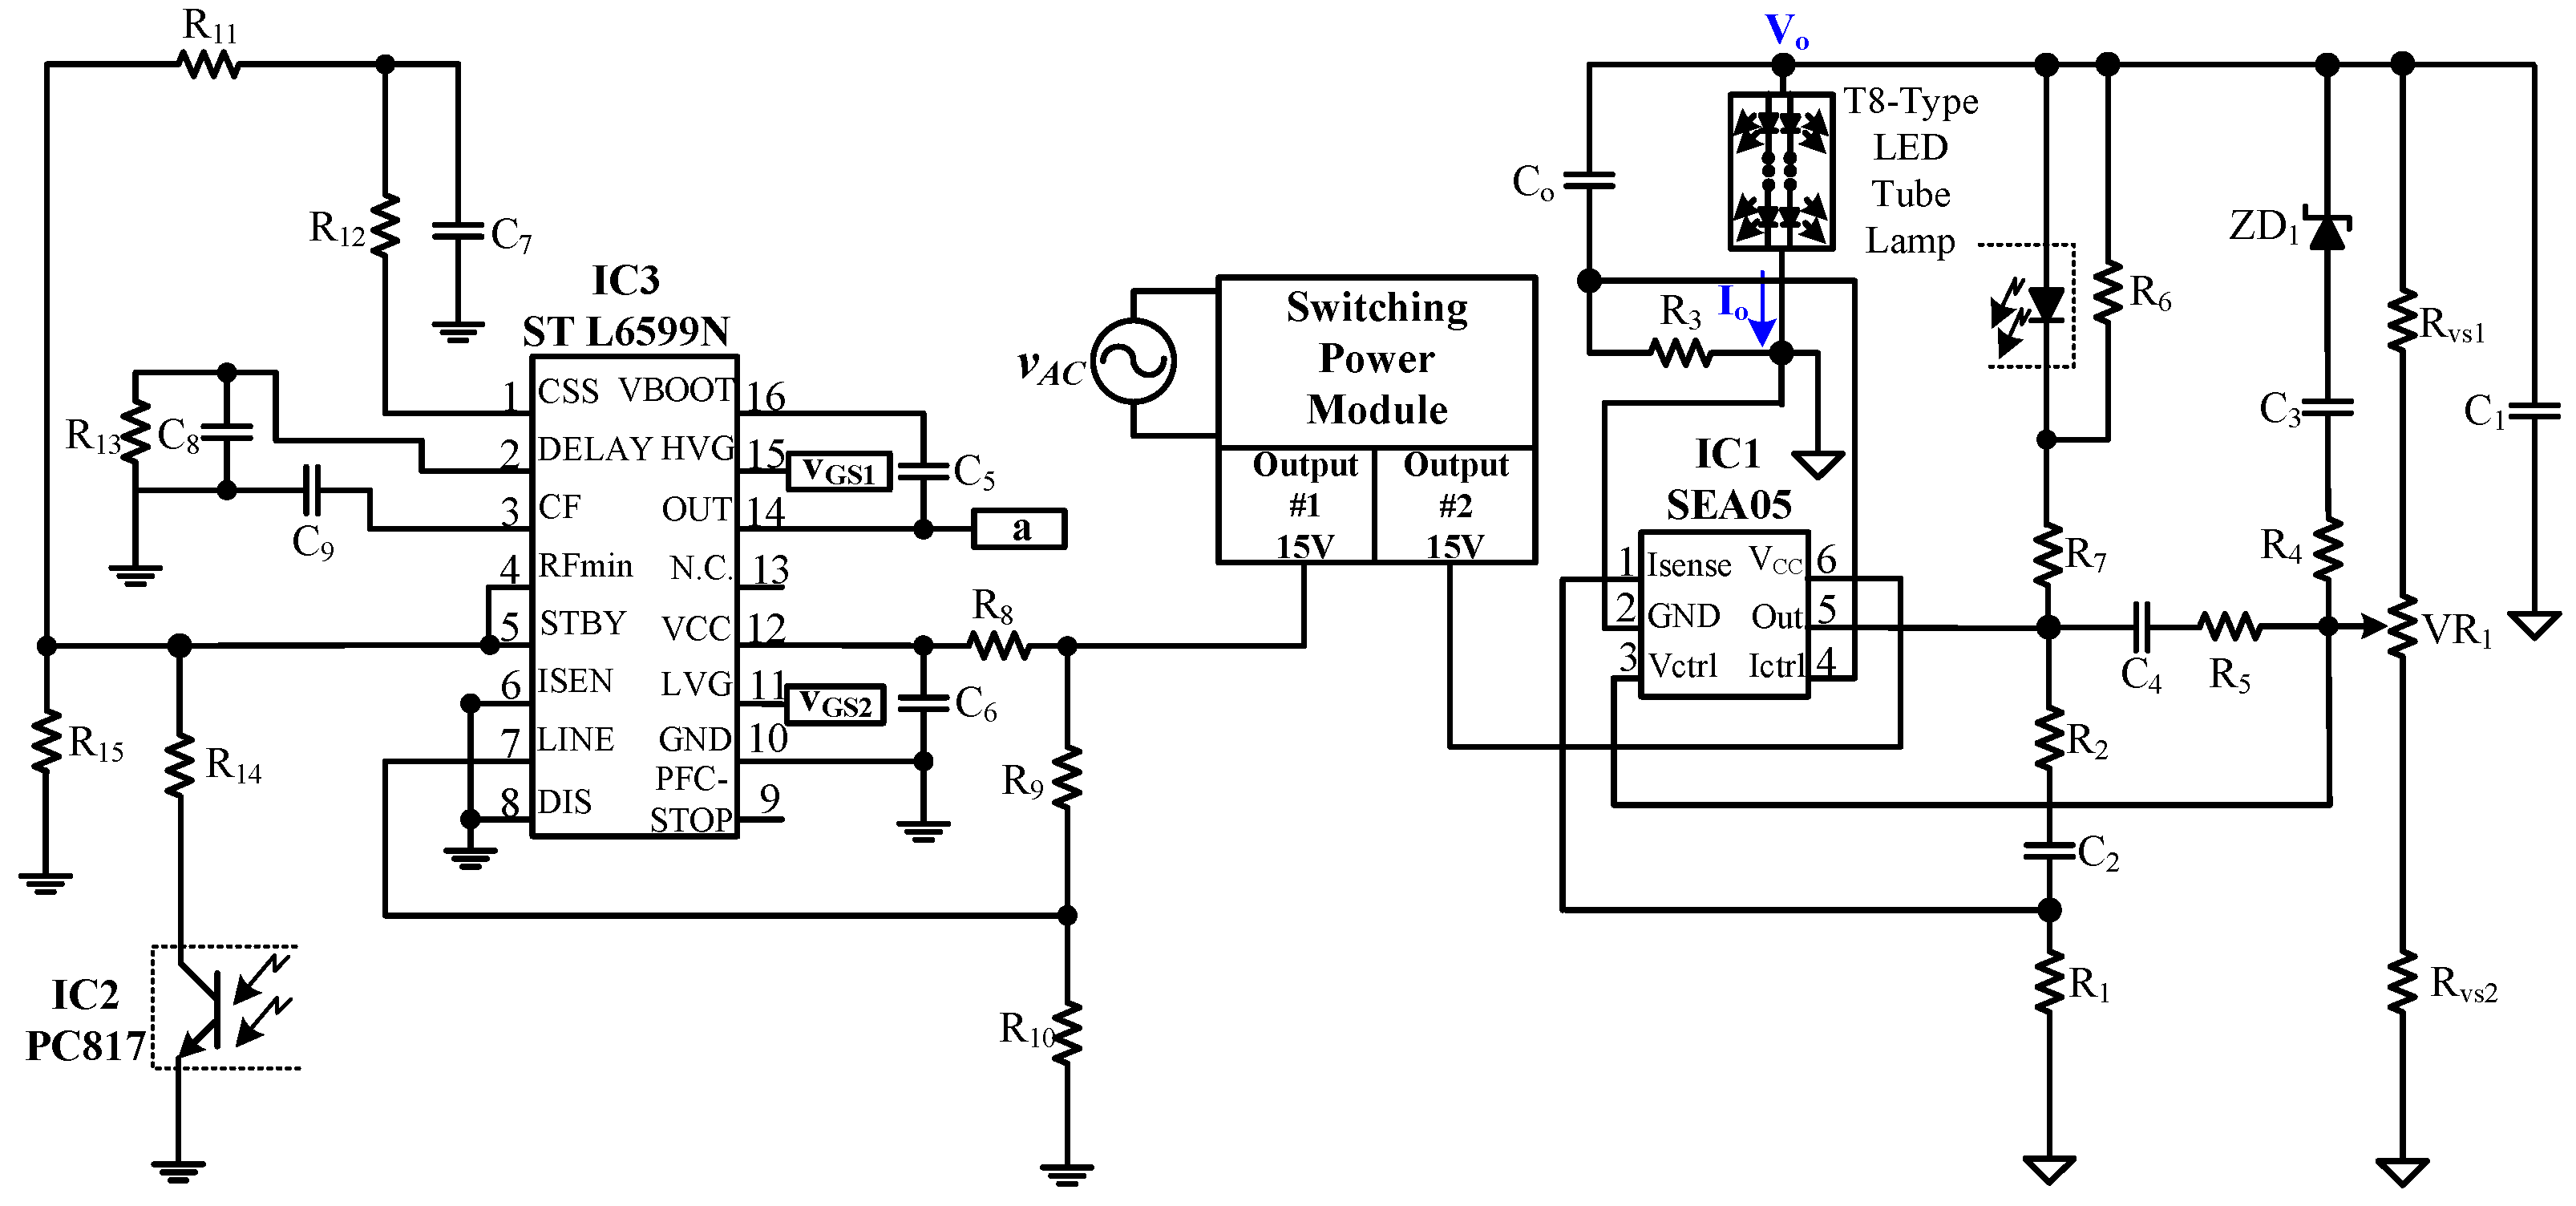 Applied Sciences Free Full Text A Single Stage Led Tube Lamp Switch Wiring Diagram Hsh As Well 6 Pin Toggle Applsci 07 00115 G005